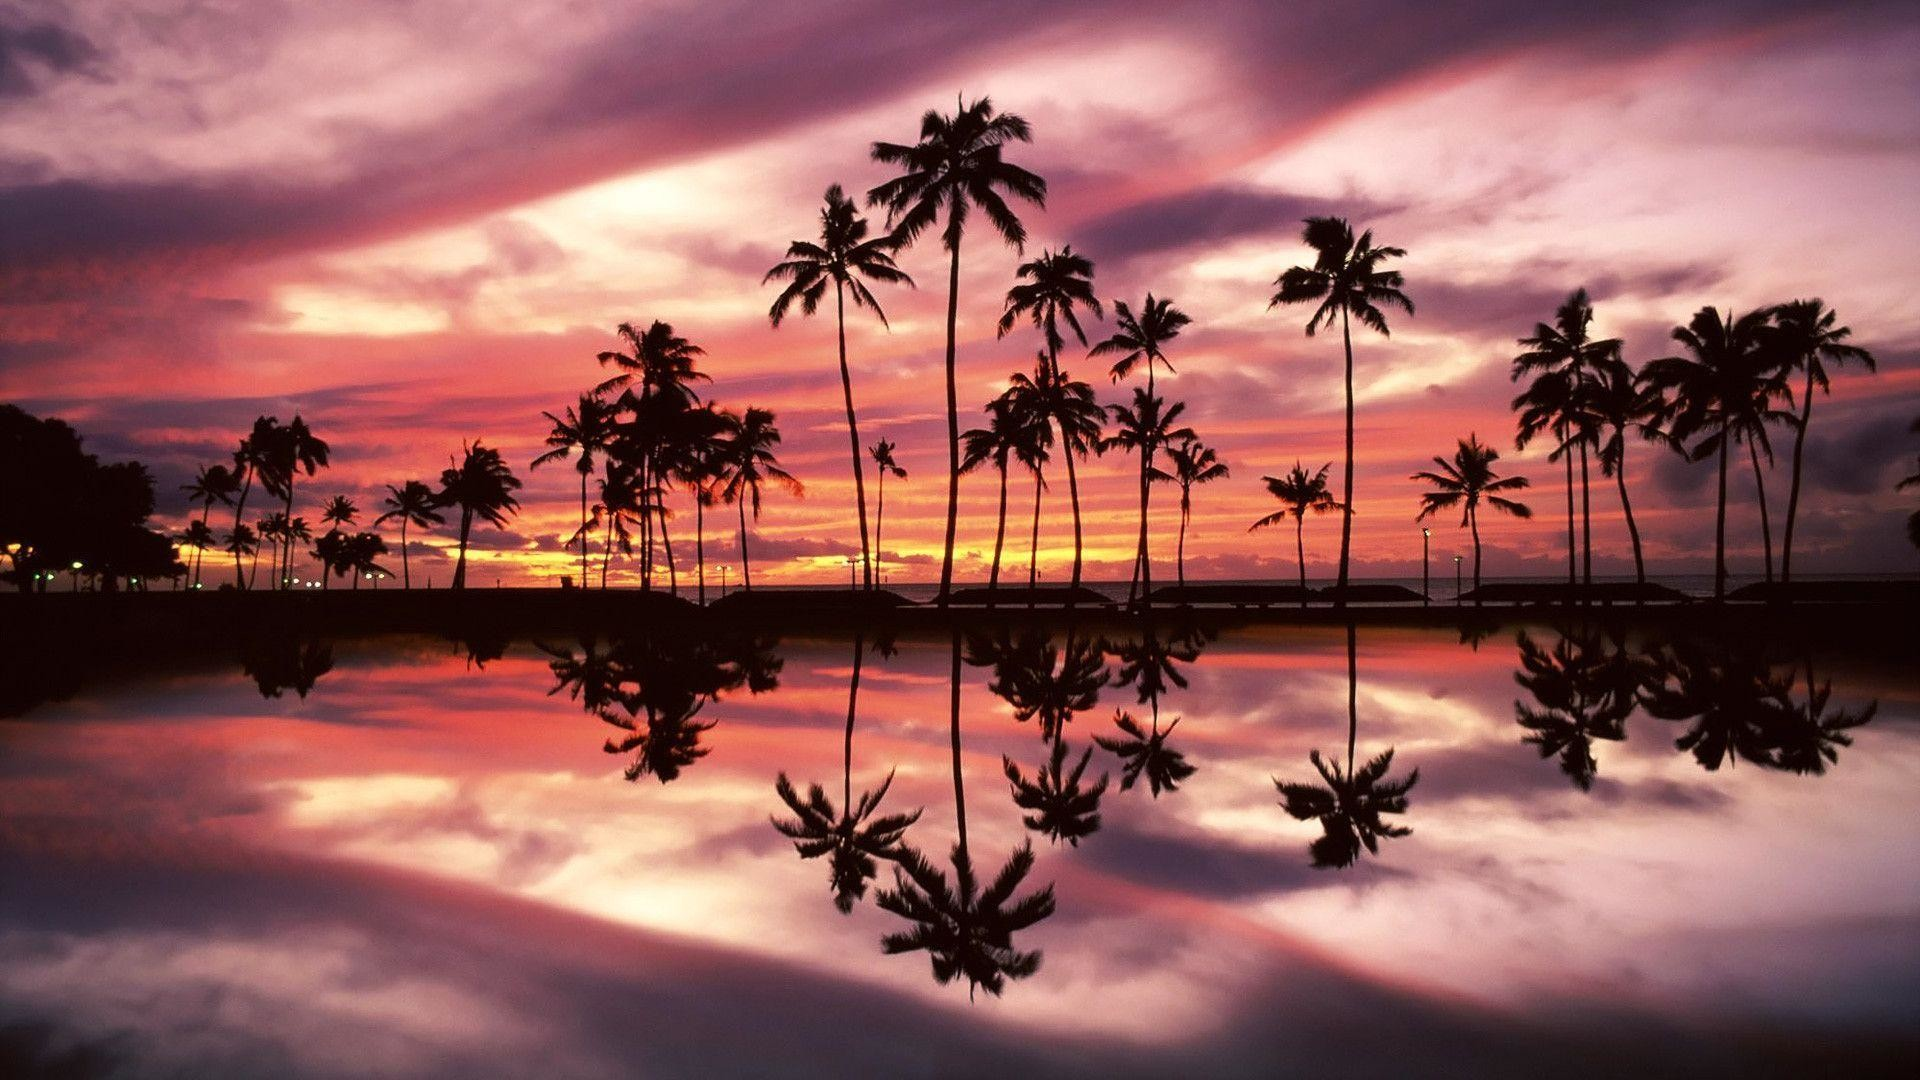 1603161 Hawaii wallpaper HD free wallpapers backgrounds images FHD .